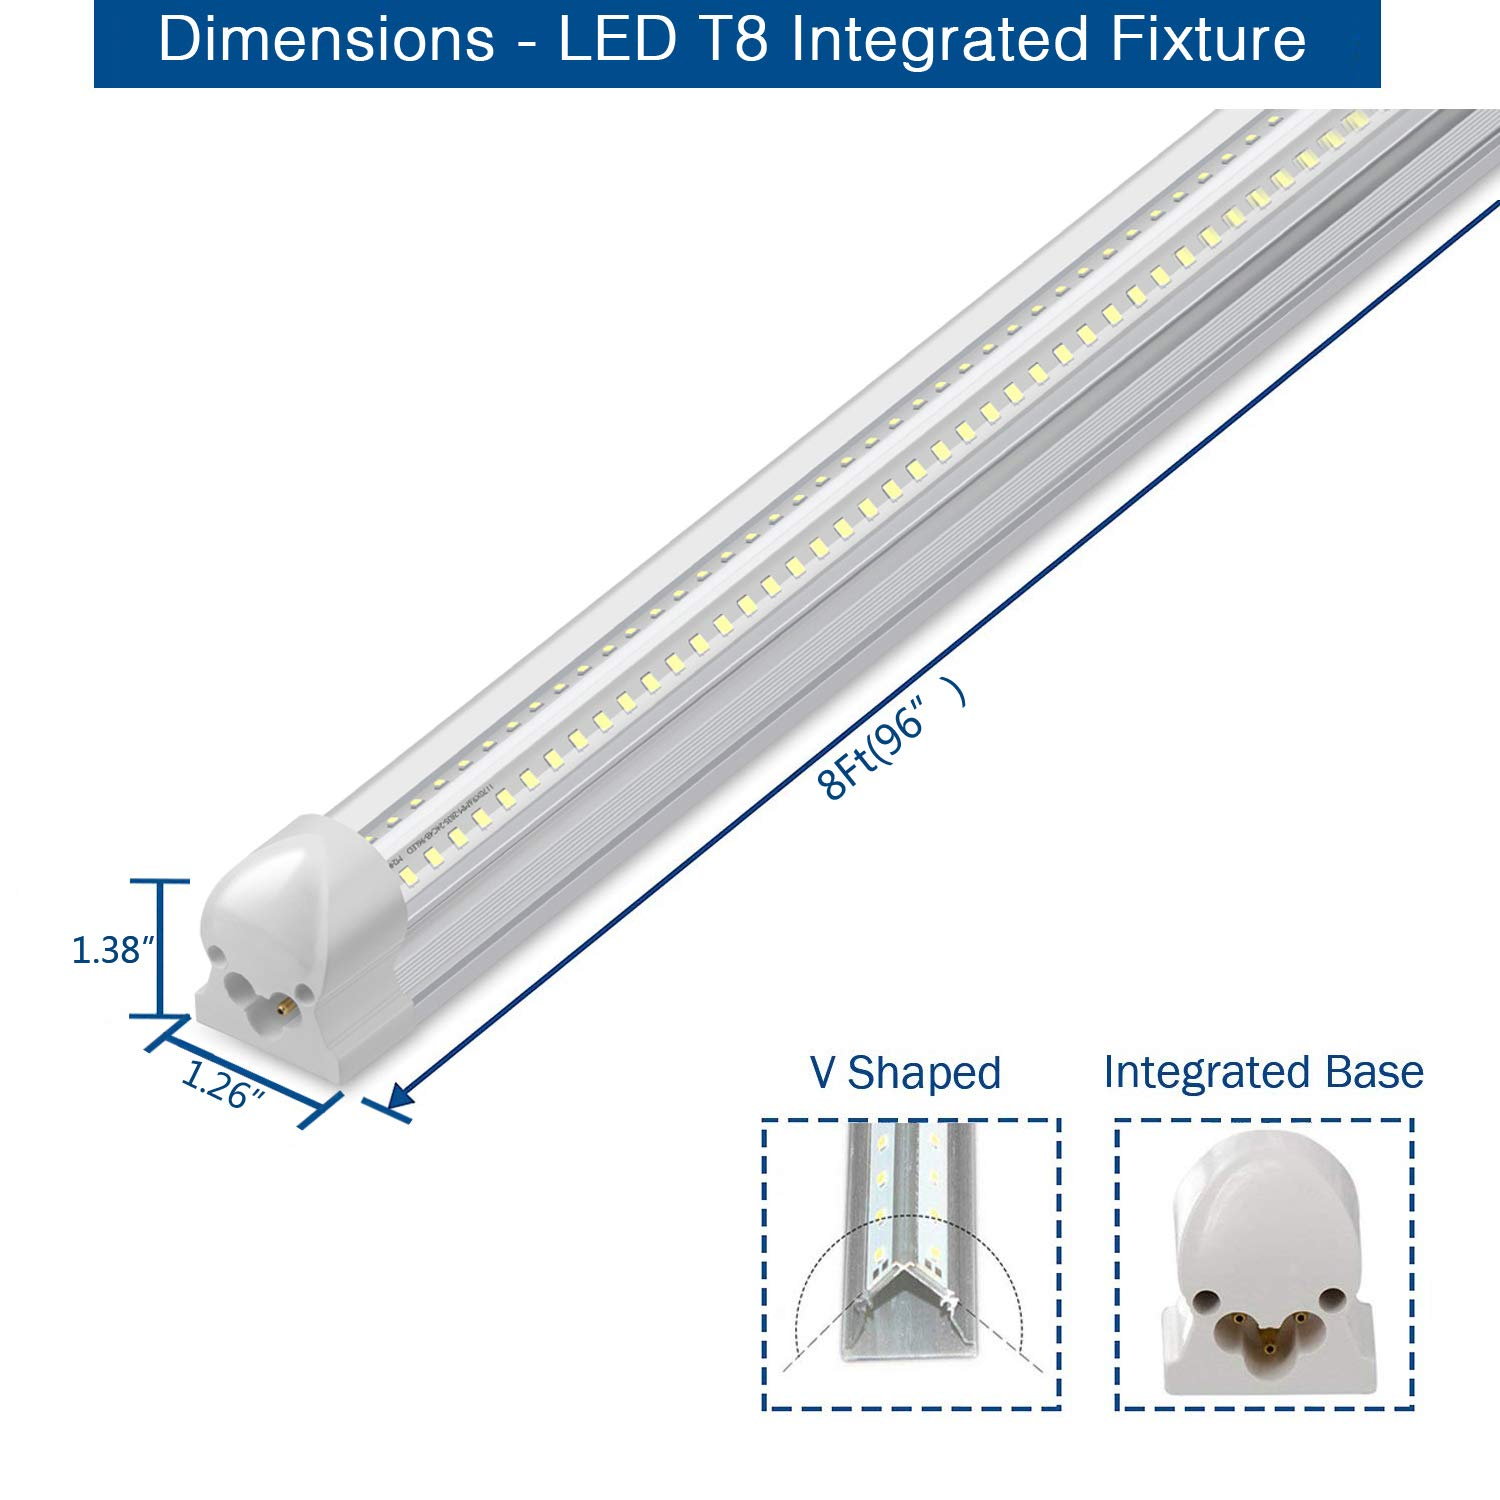 8Ft LED Shop Light, 72W, 7500LM, 6500K, T8 V-Shape Integrated Tube Light Fixture, Hight Output, Brighter White, LED Tube Light for Garage, Warehouse, Plug and Play (Pack of 5) by LECLSTAR (Image #3)